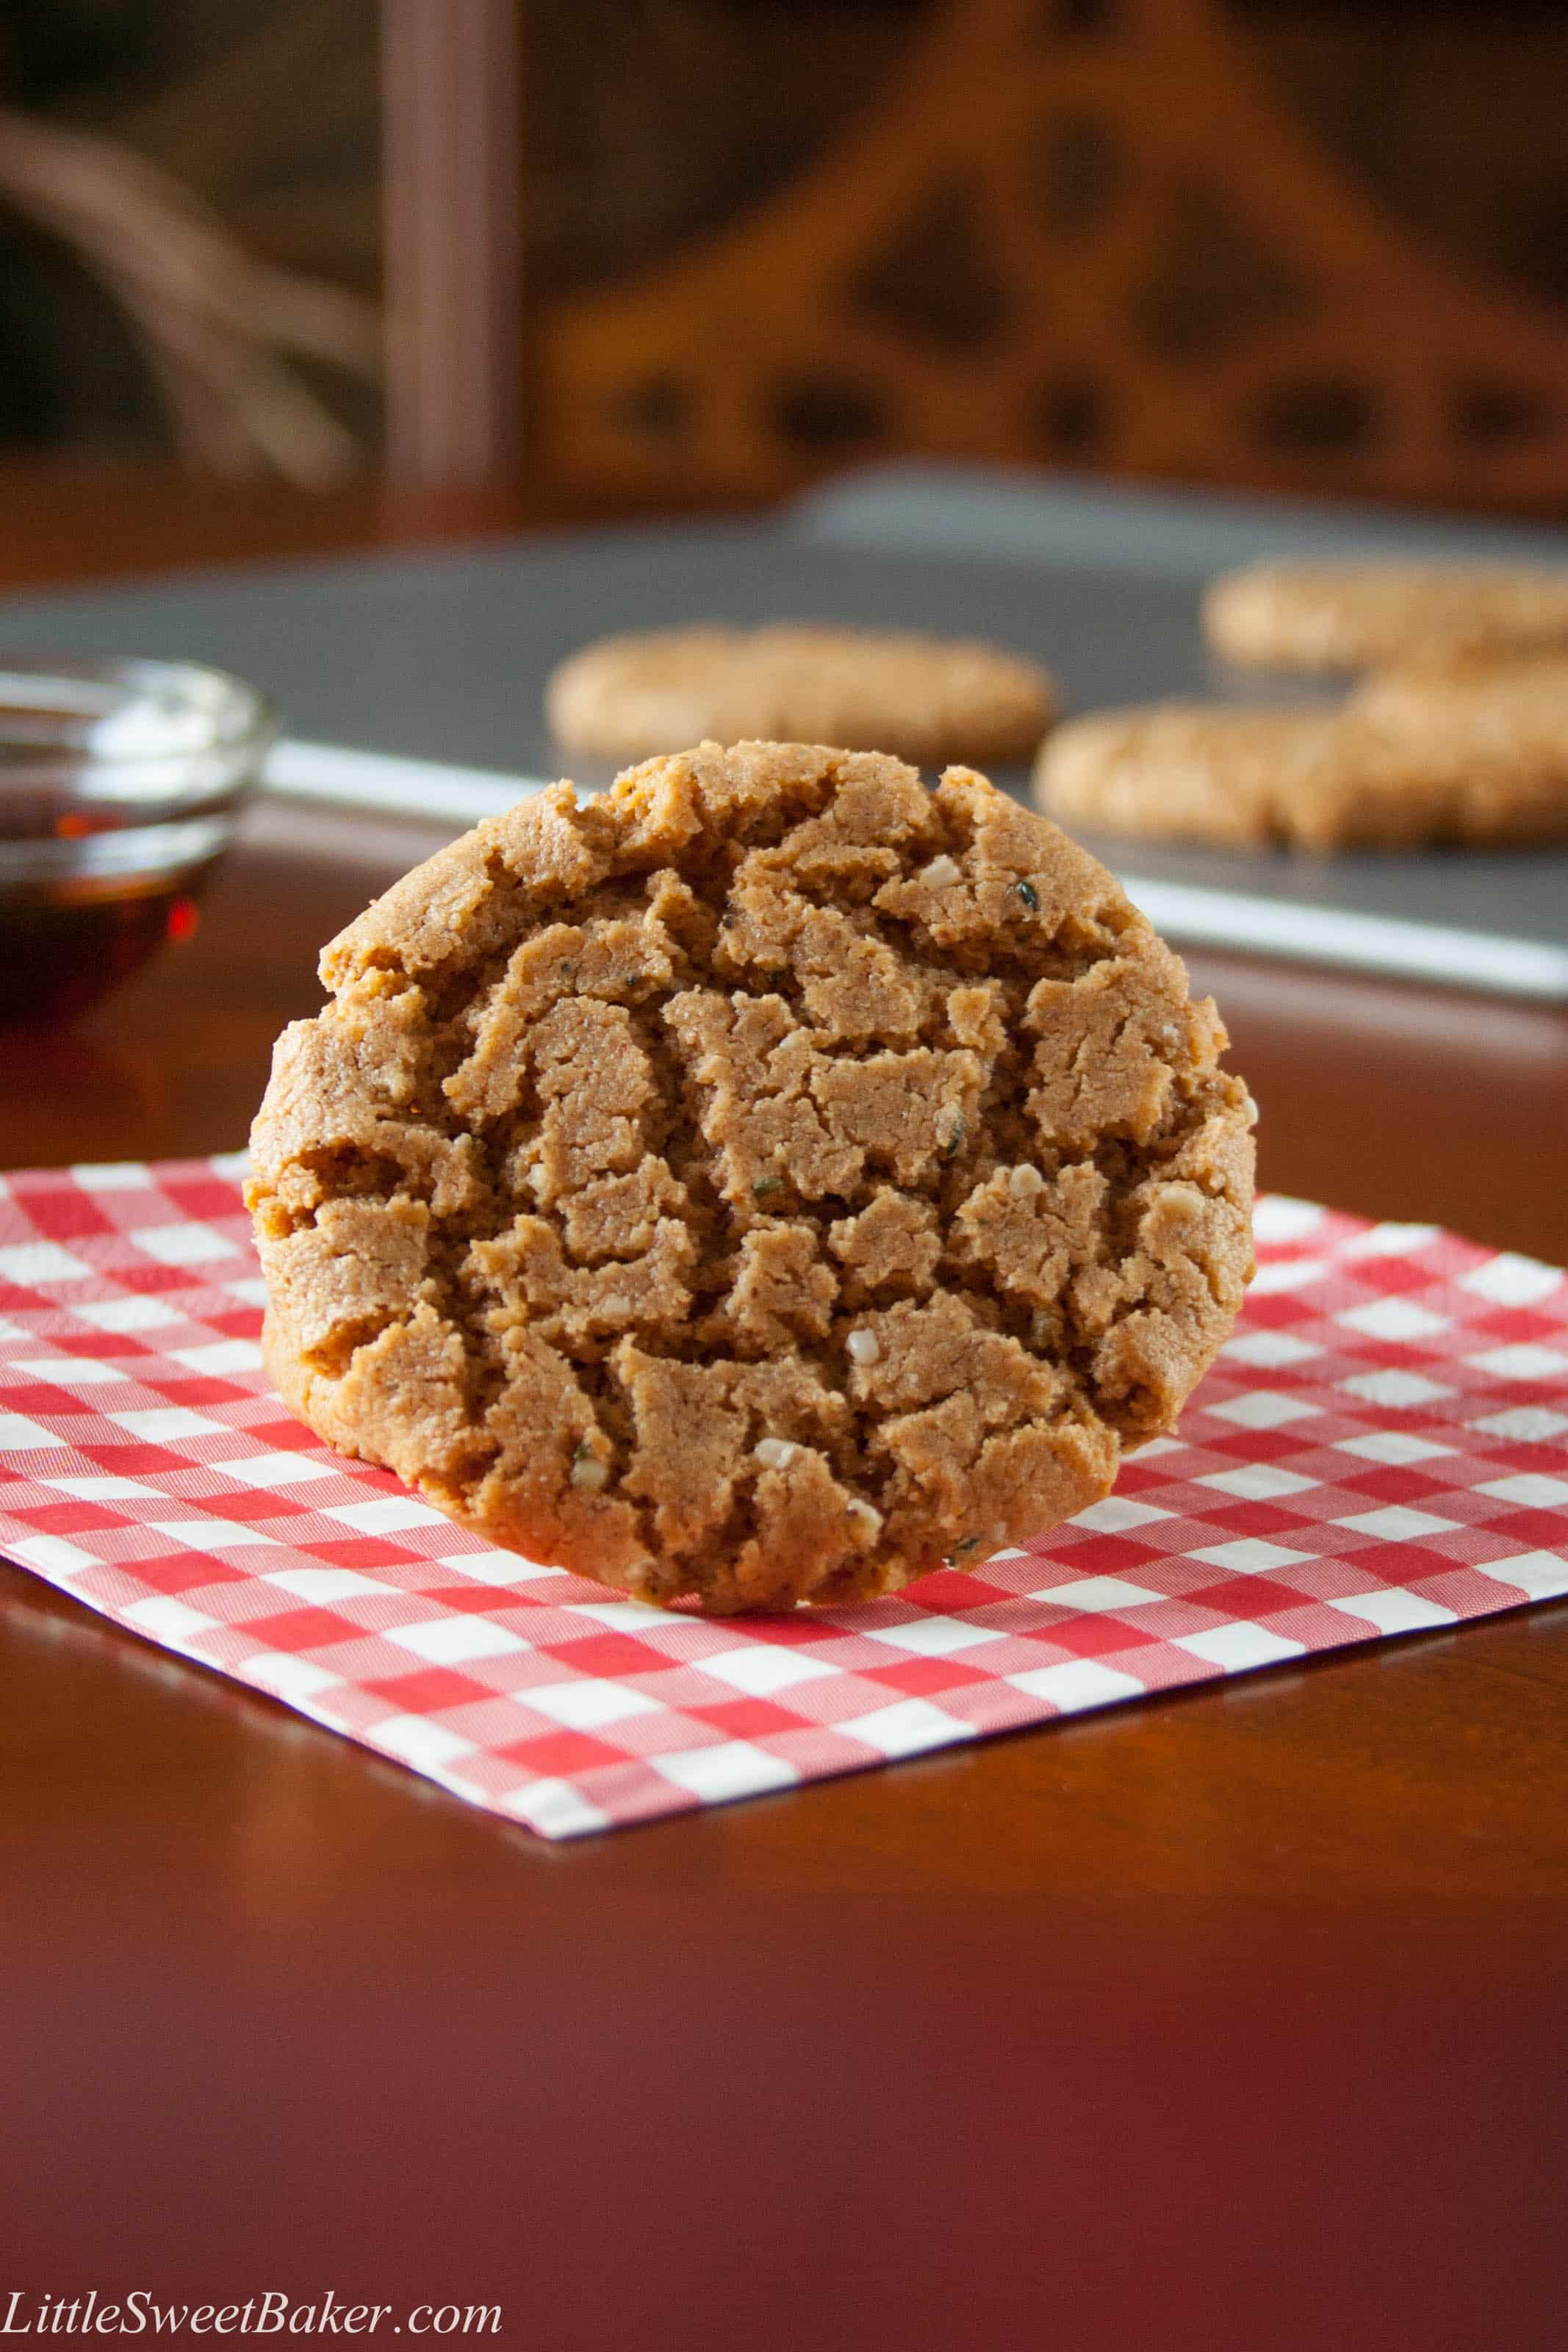 GLUTEN-FREE SPICED CASHEW BUTTER COOKIES. These chewy cookies are healthy and easy to make. If you like ginger molasses cookies, then this recipe was made for you.